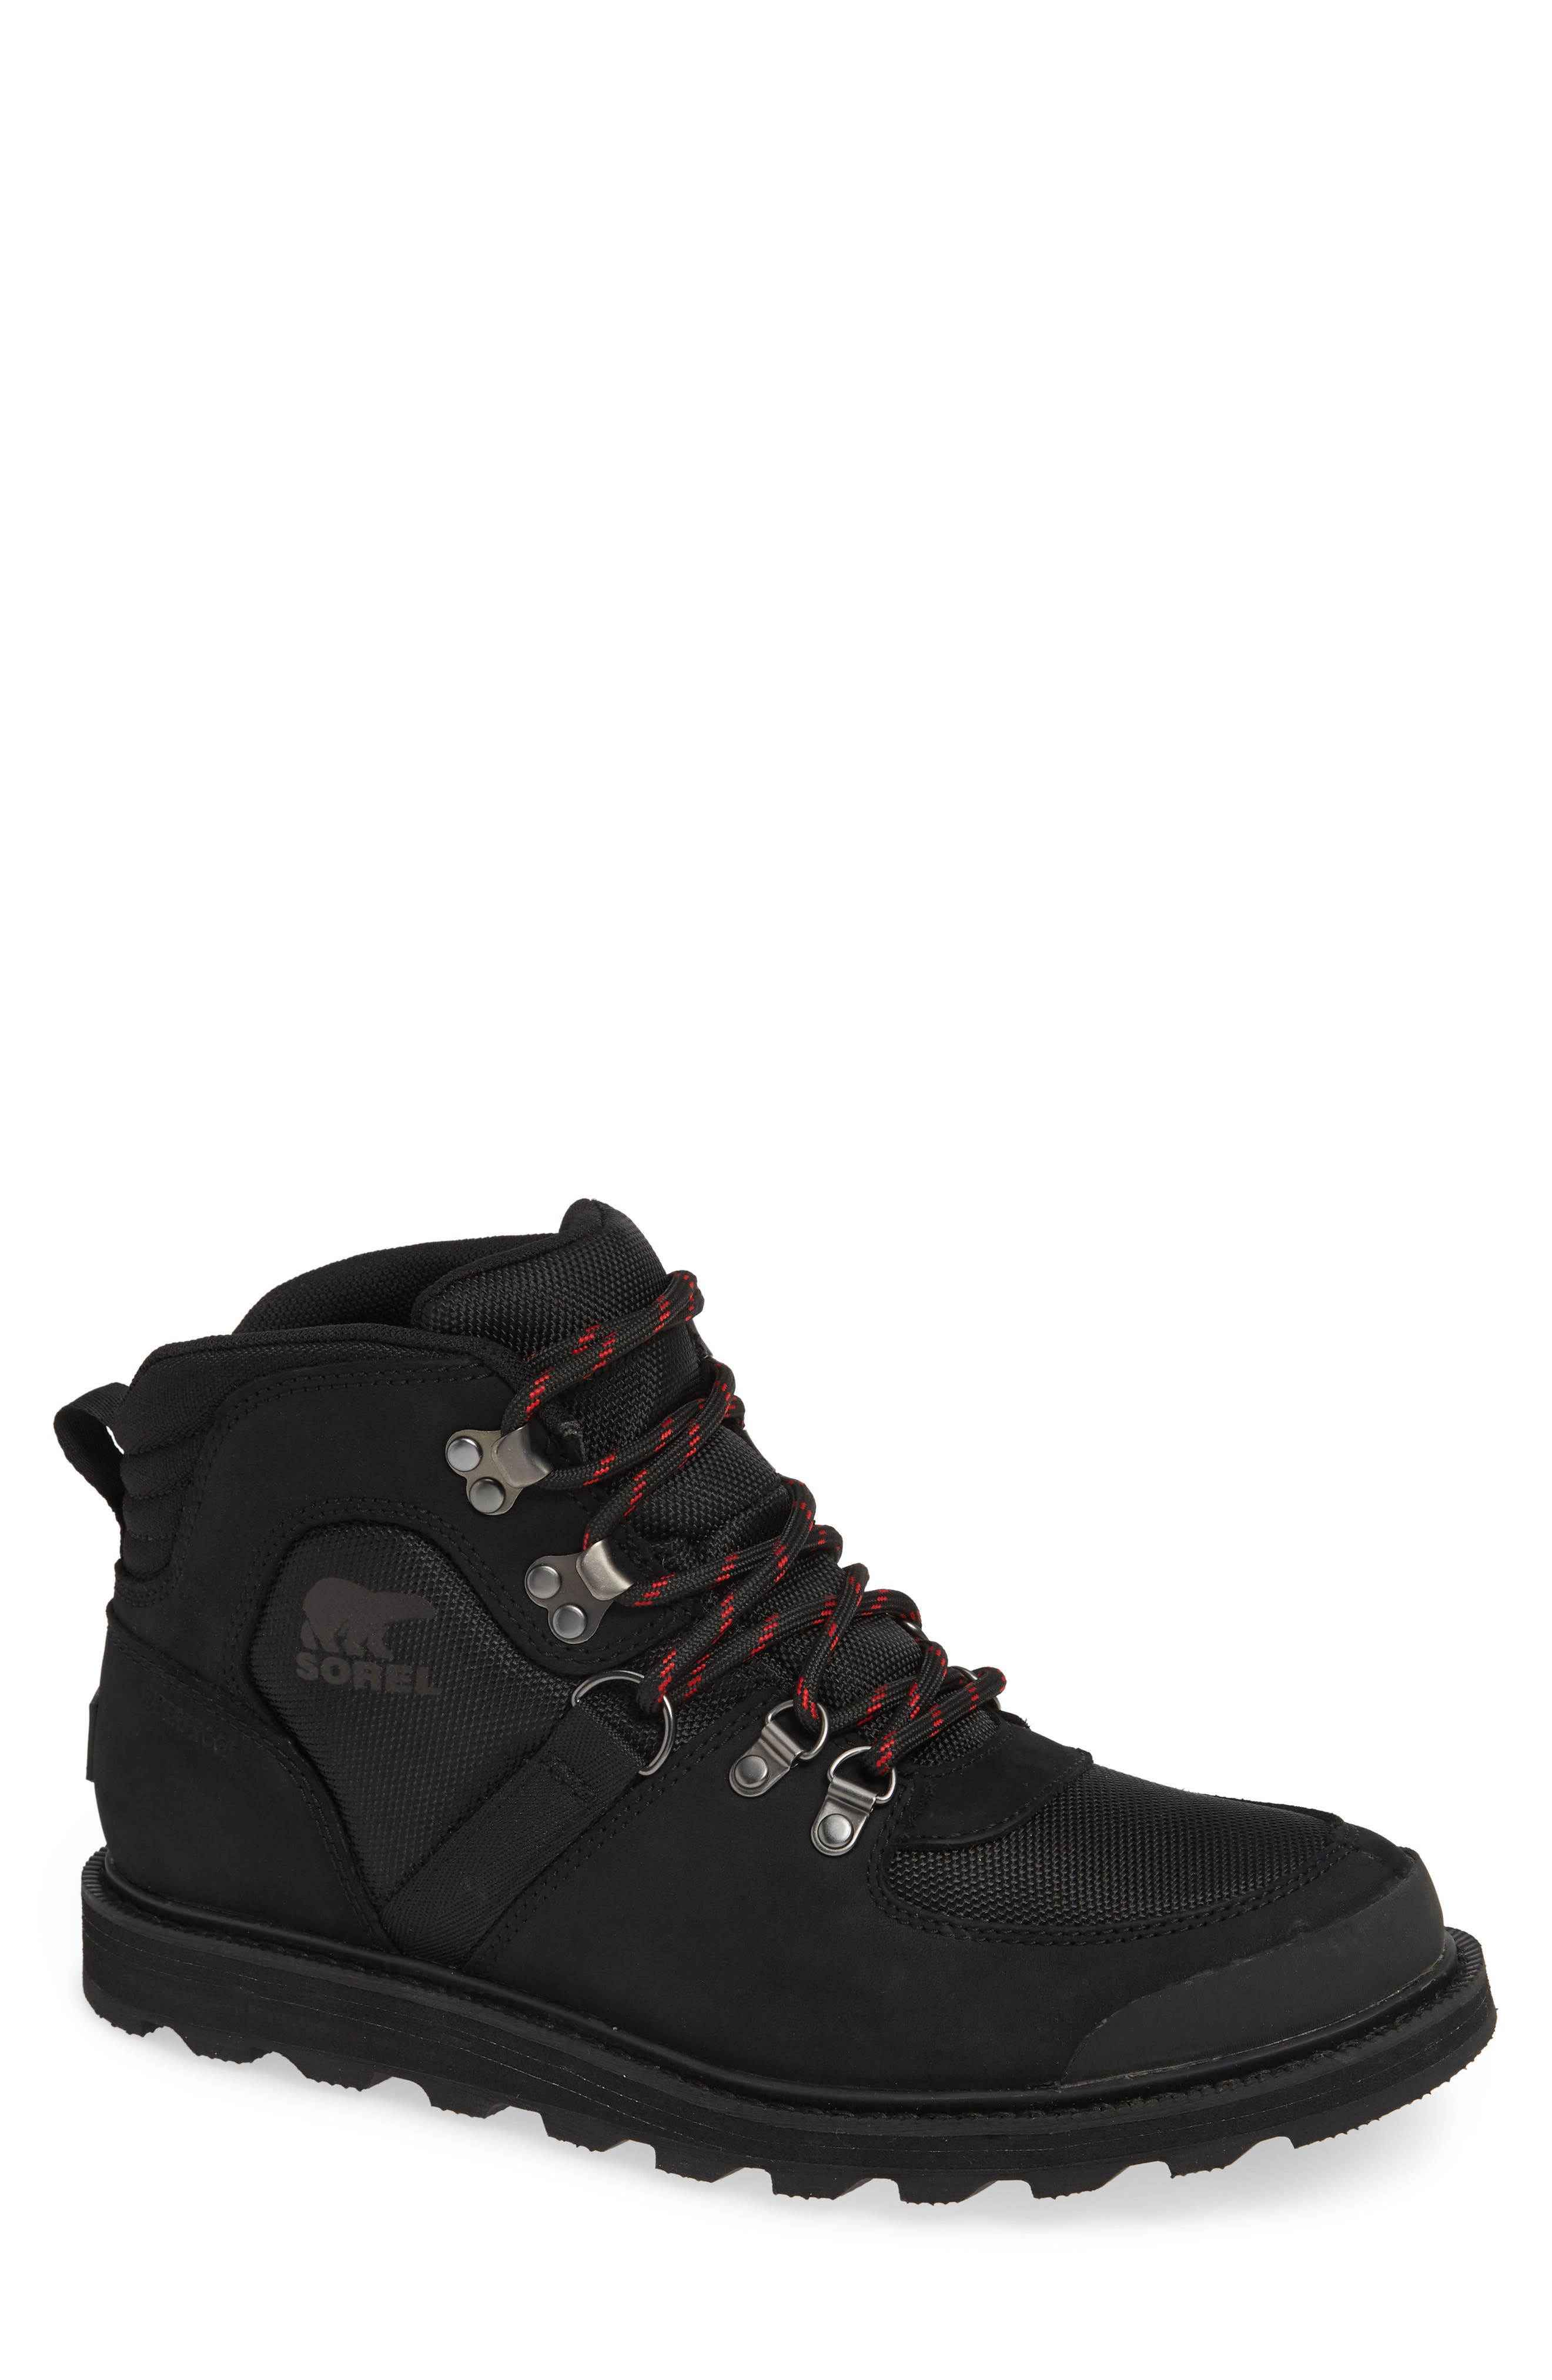 Madson Sport Waterproof Hiking Boot,                         Main,                         color, BLACK